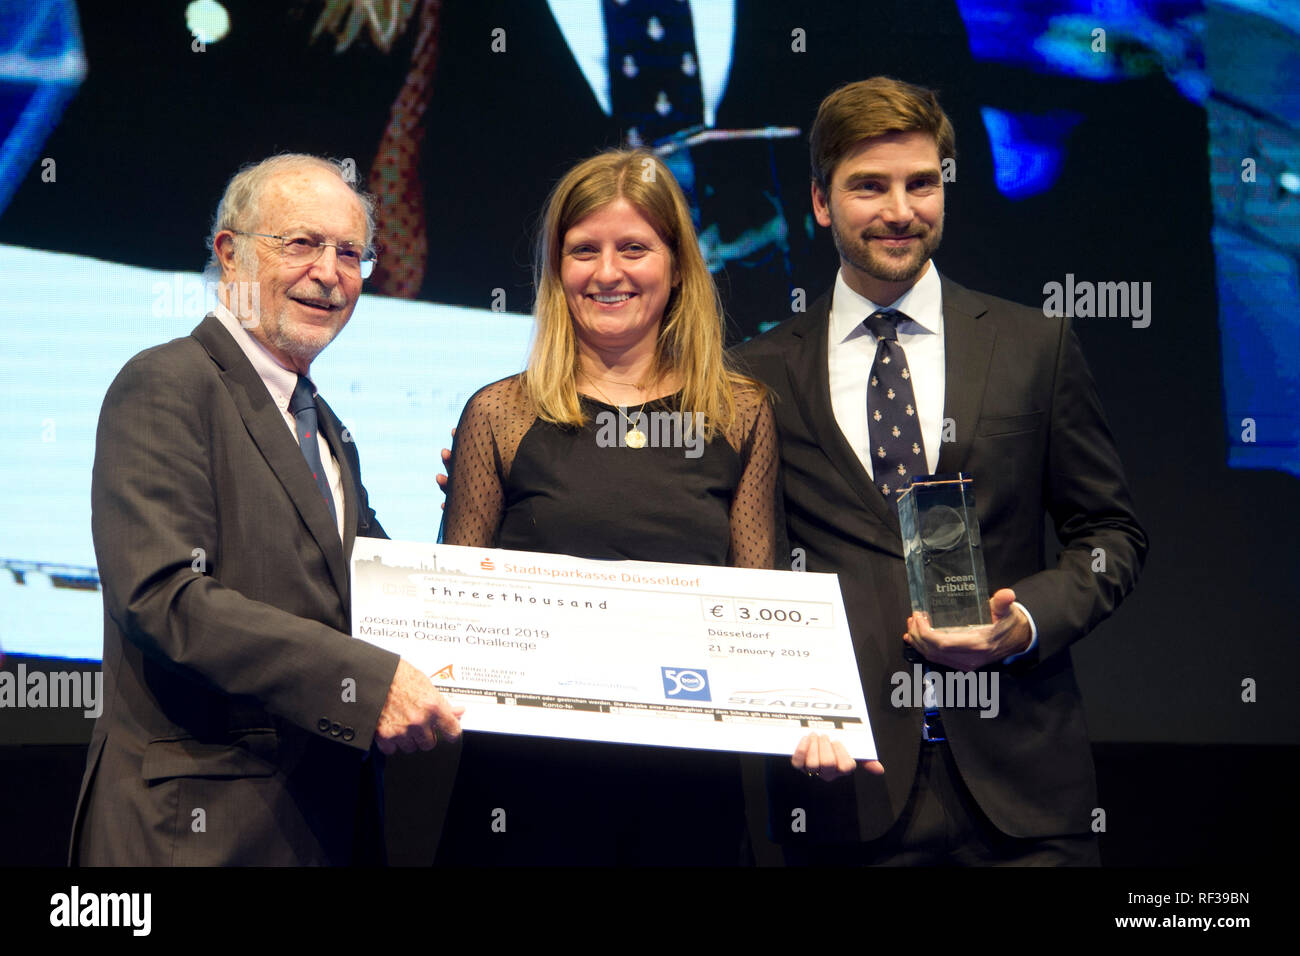 Duesseldorf, Deutschland. 21st Jan, 2019. The Vice President of the Albert II Foundation, Bernard Fautrier, presented the Aûocean tribute, Award to the representatives of the Malicia Ocean Challenge Blue Motion Night and the Ocean Tribute Award at the boat show 2019, Booth 2019 in Duesseldorf from 19 until 27th January 2019, 21.01.2019. ¬   usage worldwide Credit: dpa/Alamy Live News - Stock Image